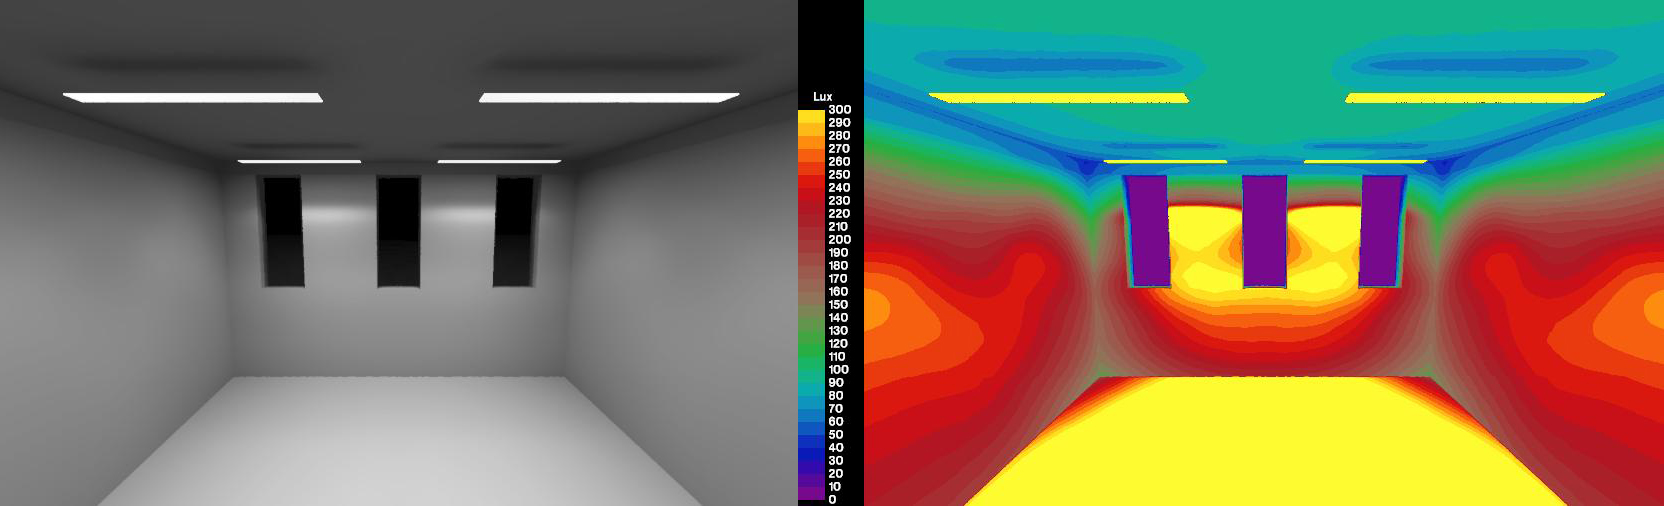 Simulating Luminaires with IES Files - DIVA for Rhino